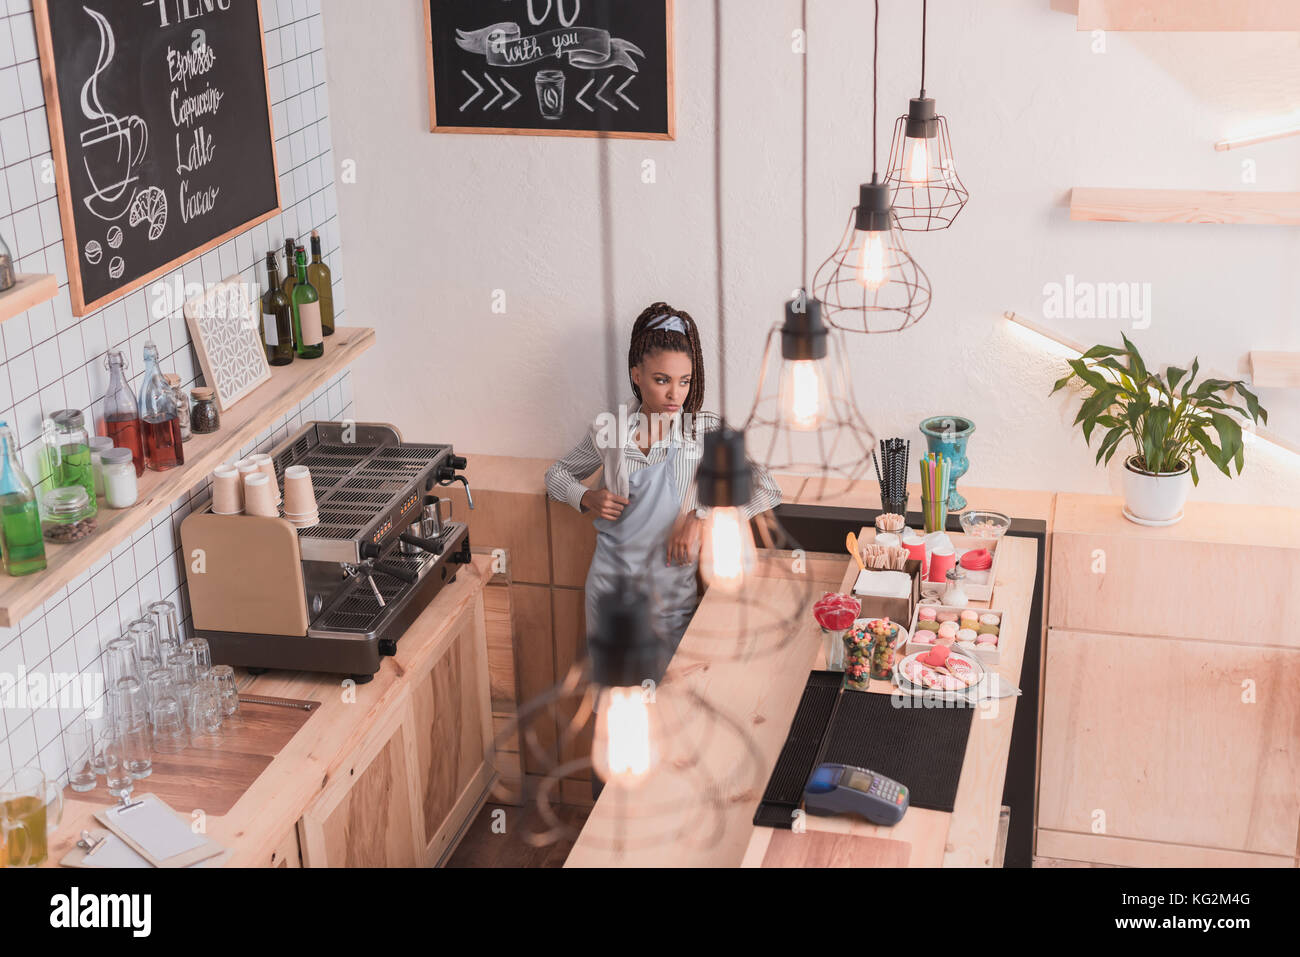 barista standing behind counter - Stock Image